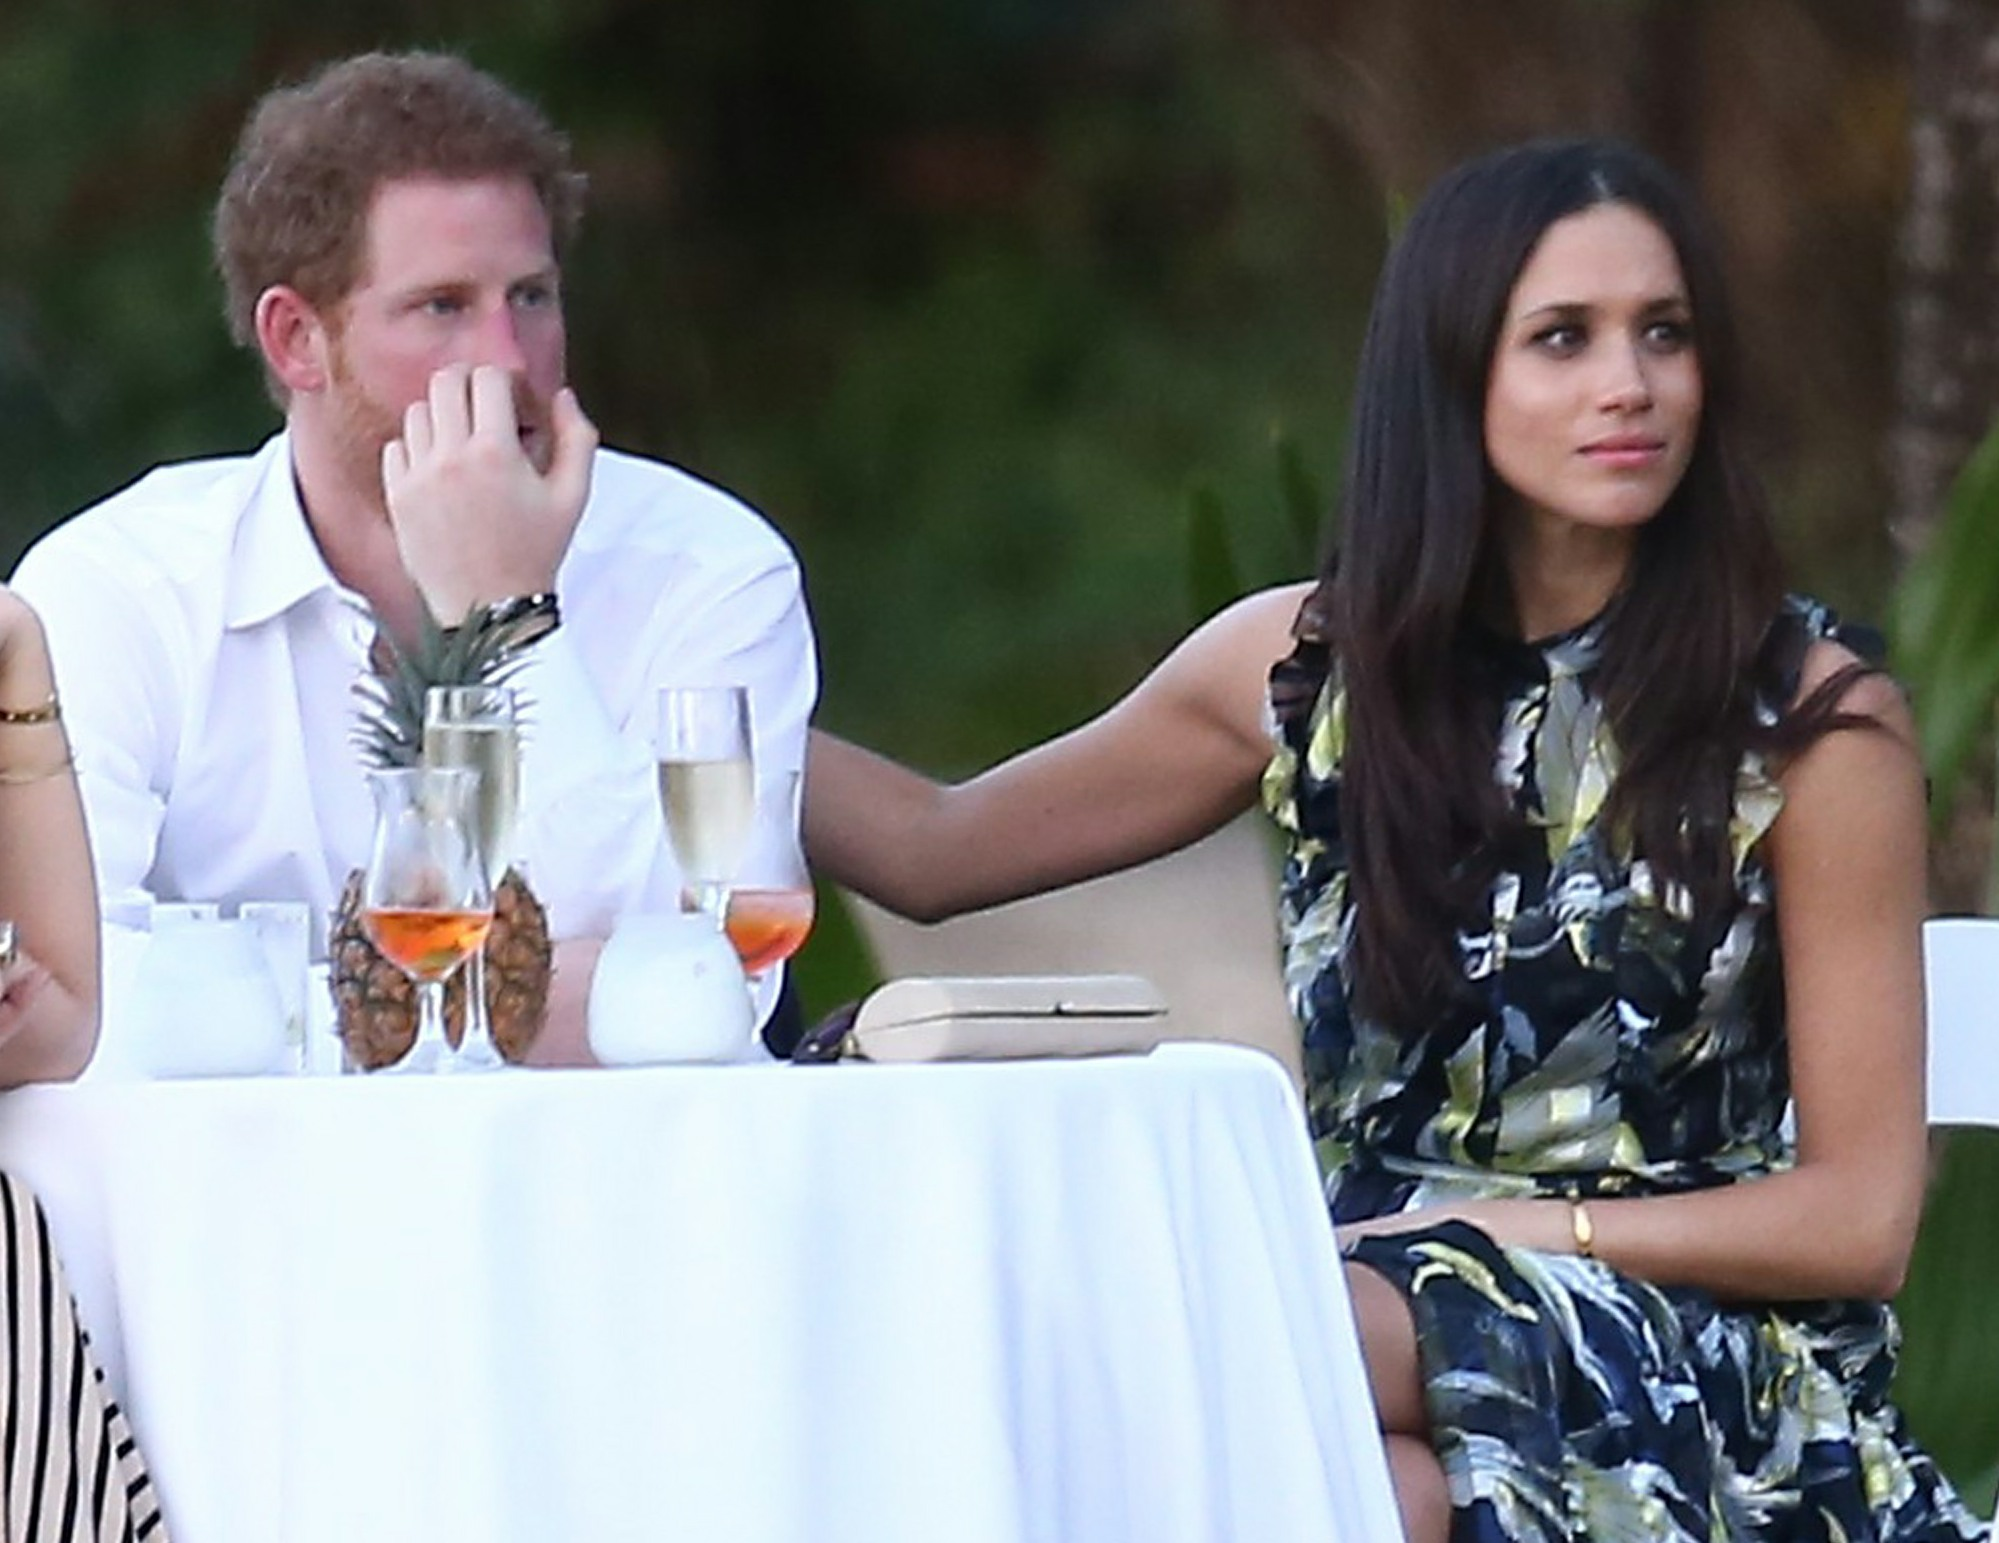 Prince Harry And Meghan Markle Attend A Wedding In Jamaica